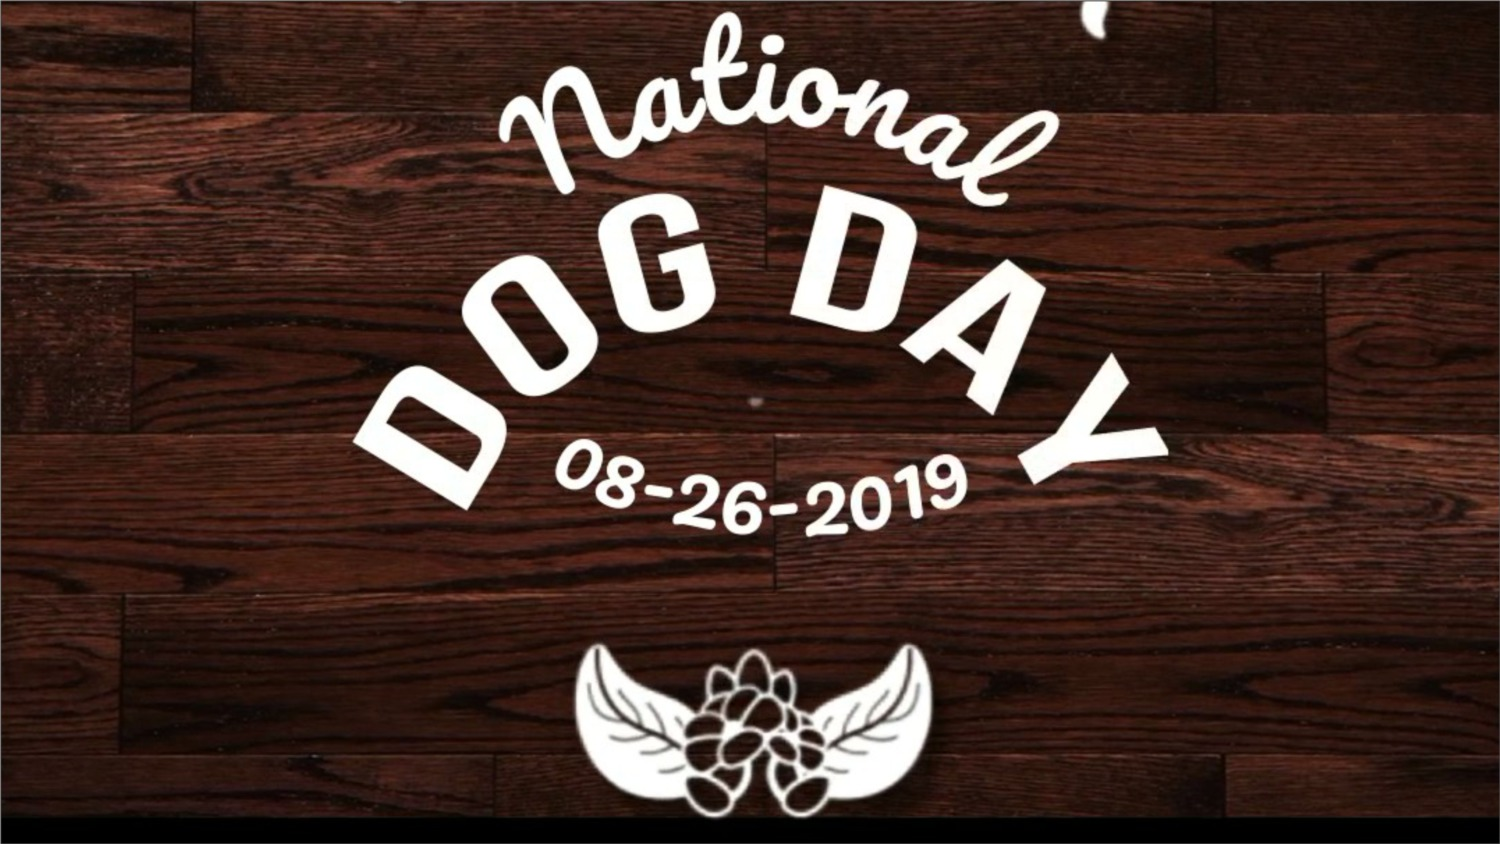 National Dog Day - 08/26/2019